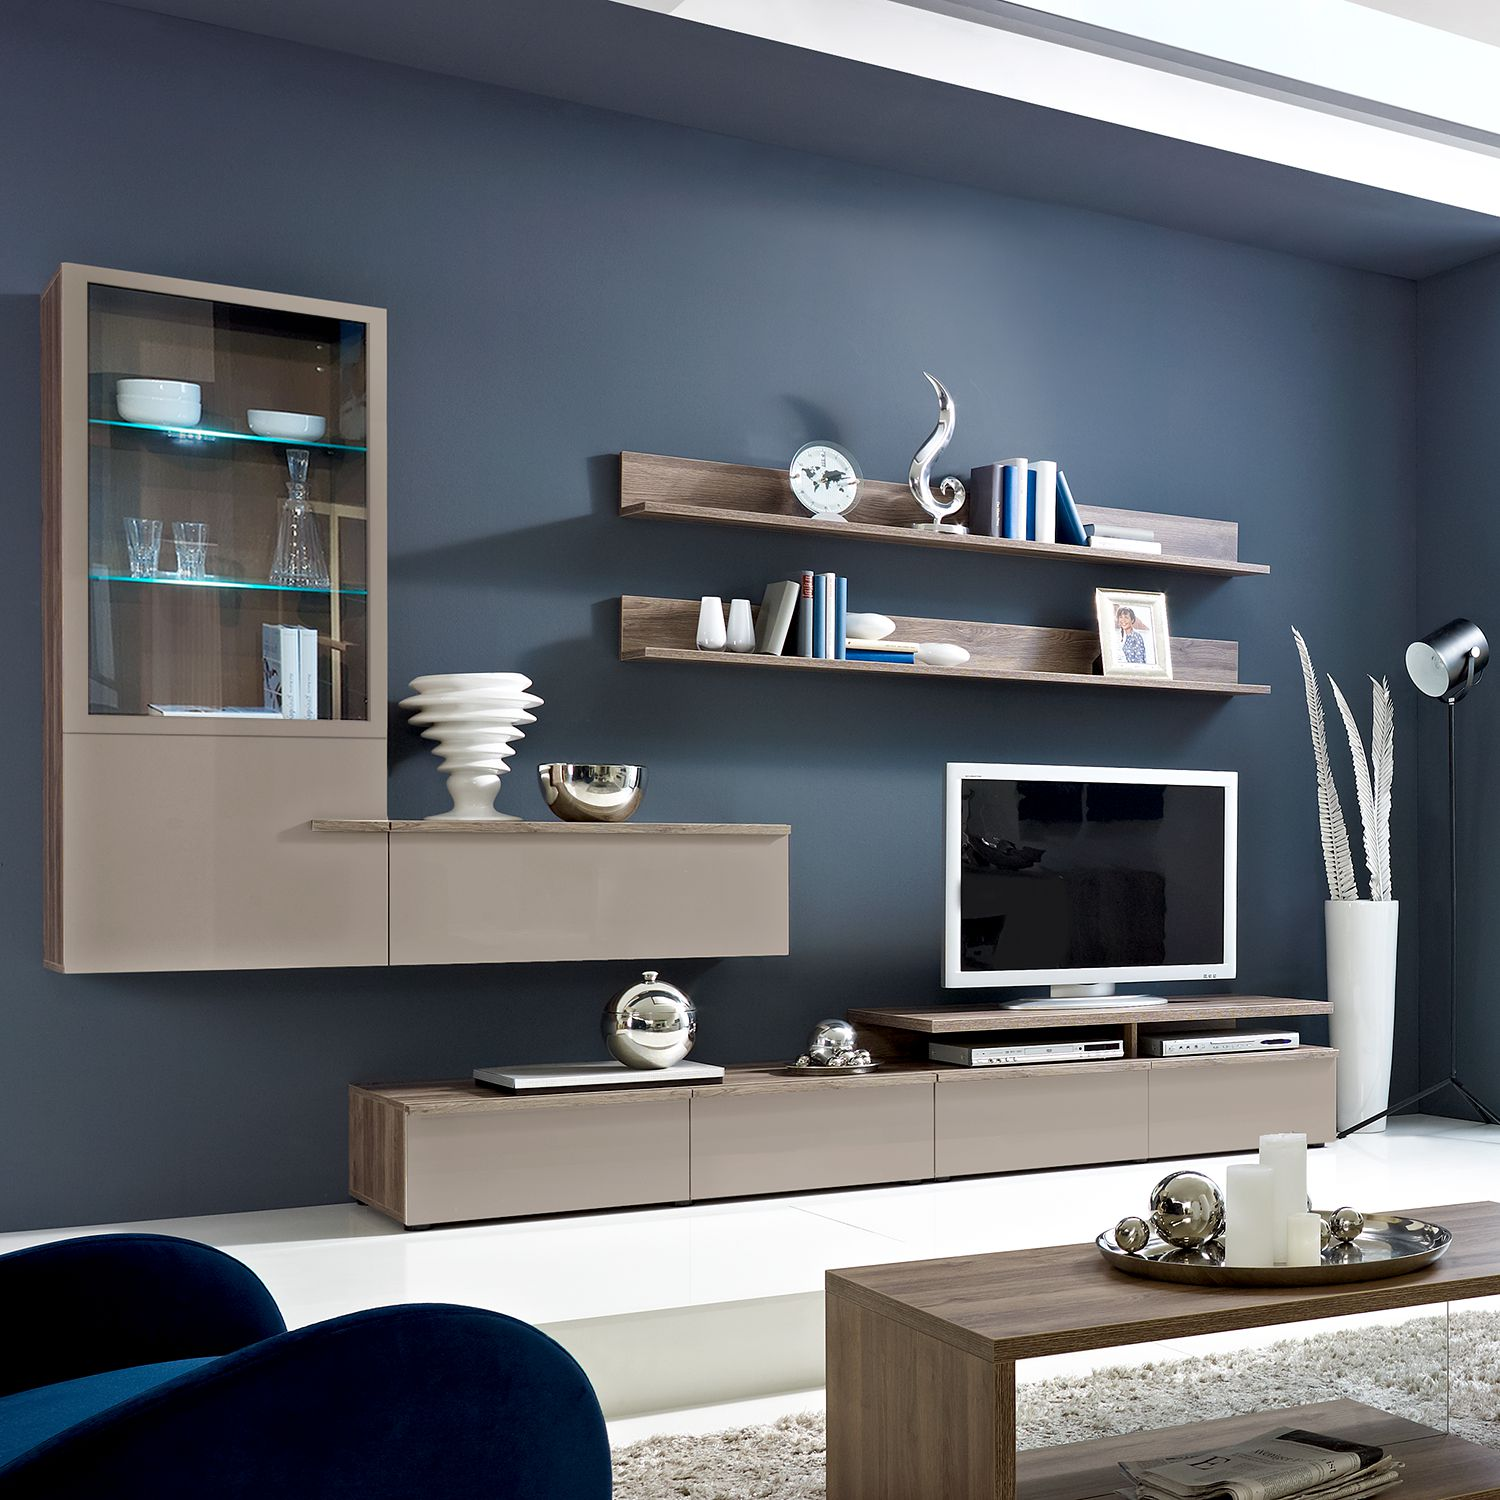 wohnzimmer online g nstig kaufen ber shop24. Black Bedroom Furniture Sets. Home Design Ideas